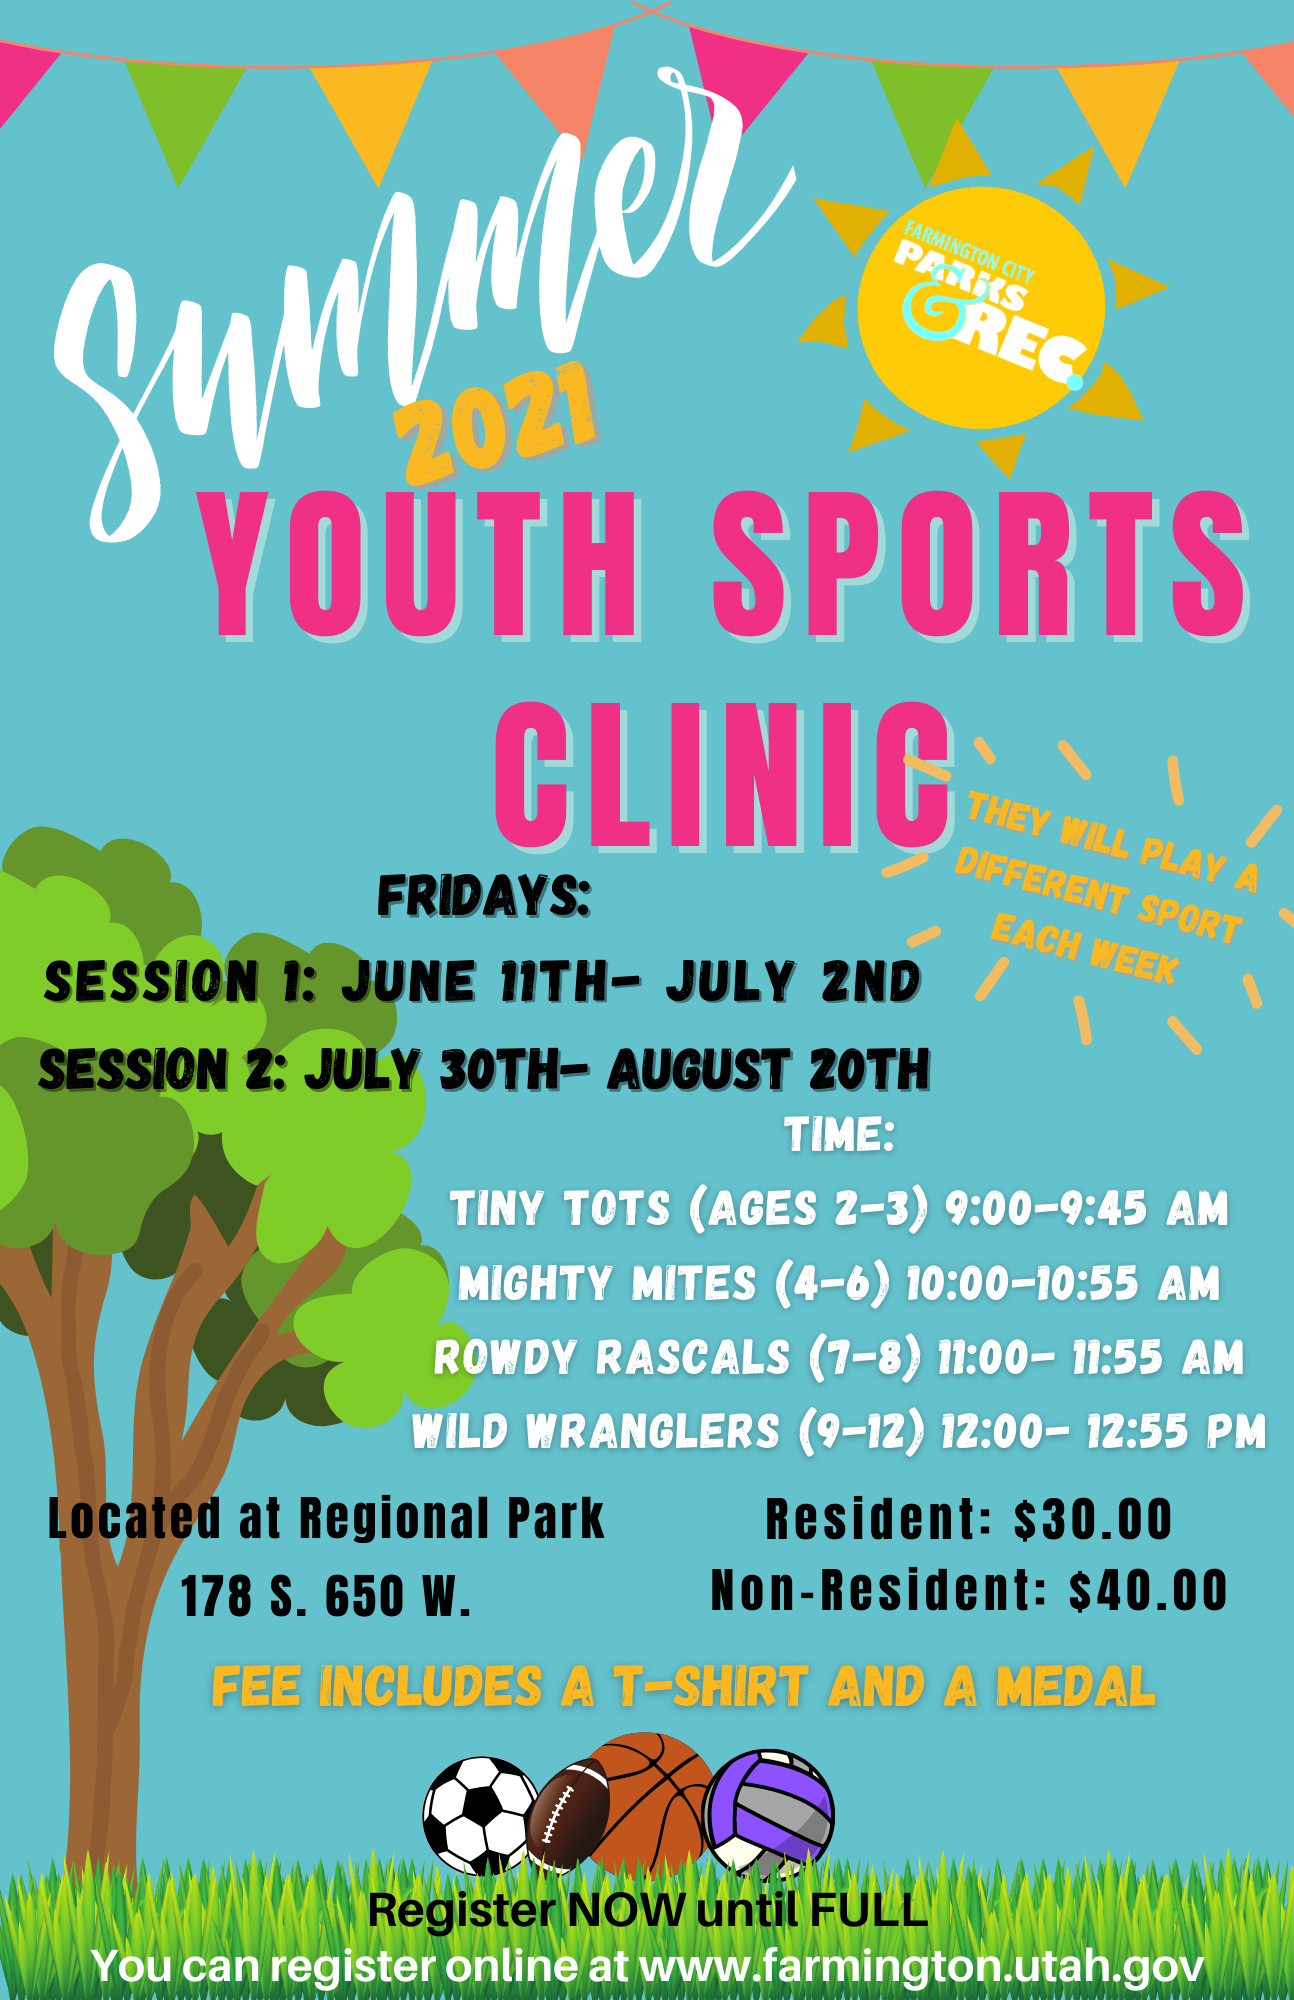 Summer Youth sports clinic flyer 2021